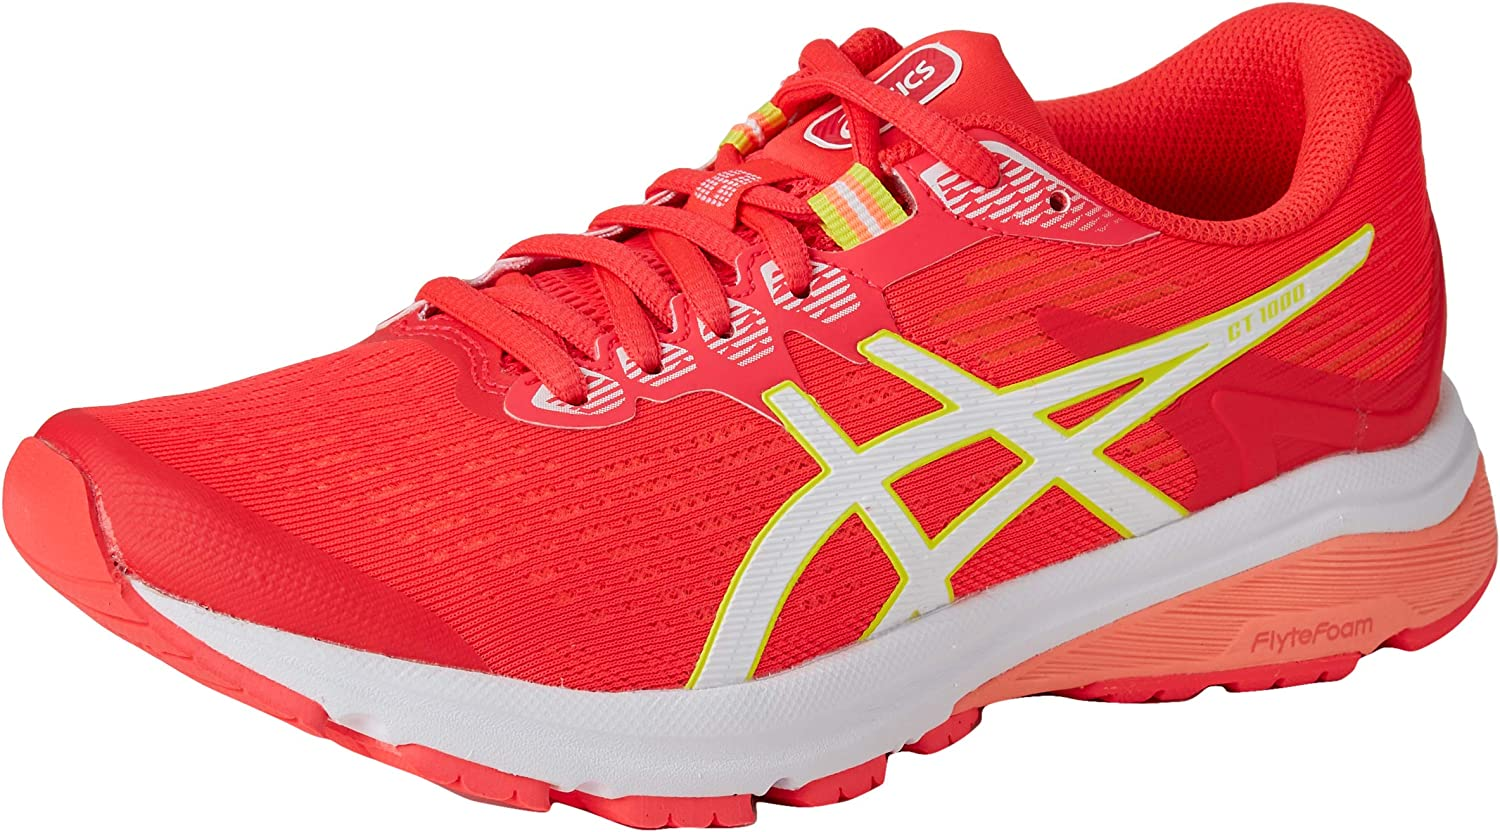 ASICS Fashionable Gt-1000 8 Womens Running Shoes Trainers Award 1012A460 Sneakers